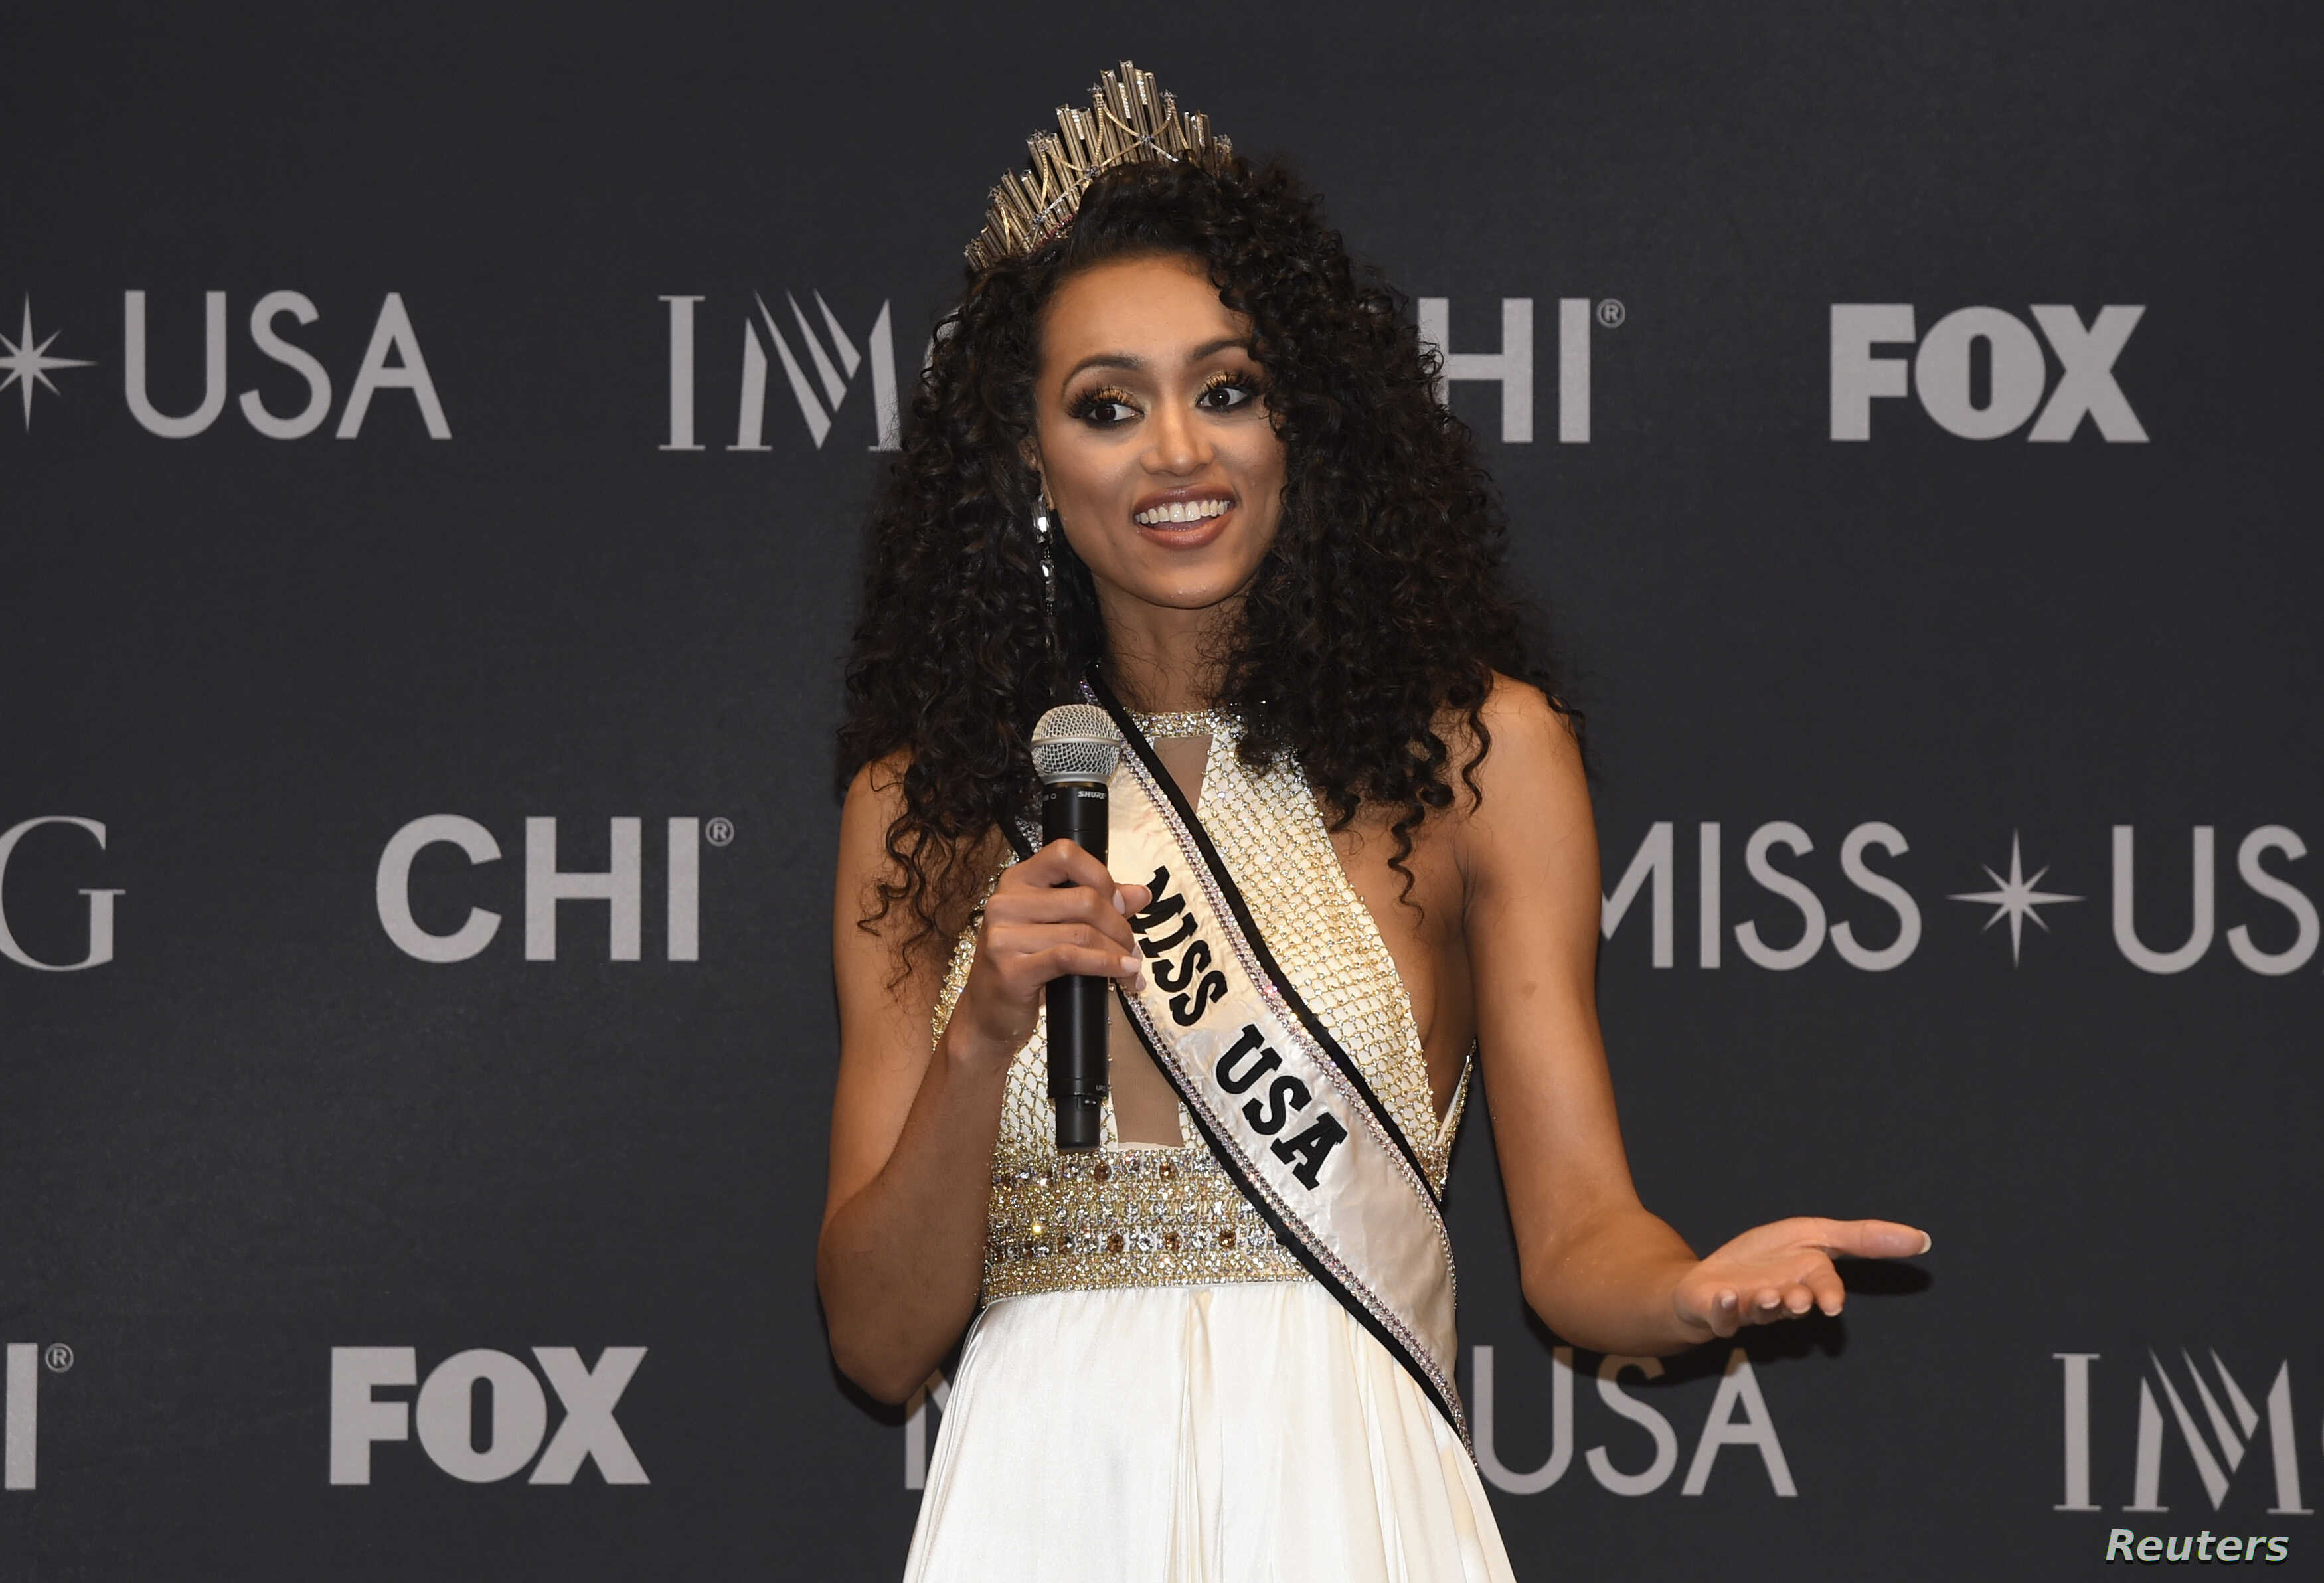 2017 Miss USA Kara McCullough of the District of Columbia speaks during a press conference after the pageant.